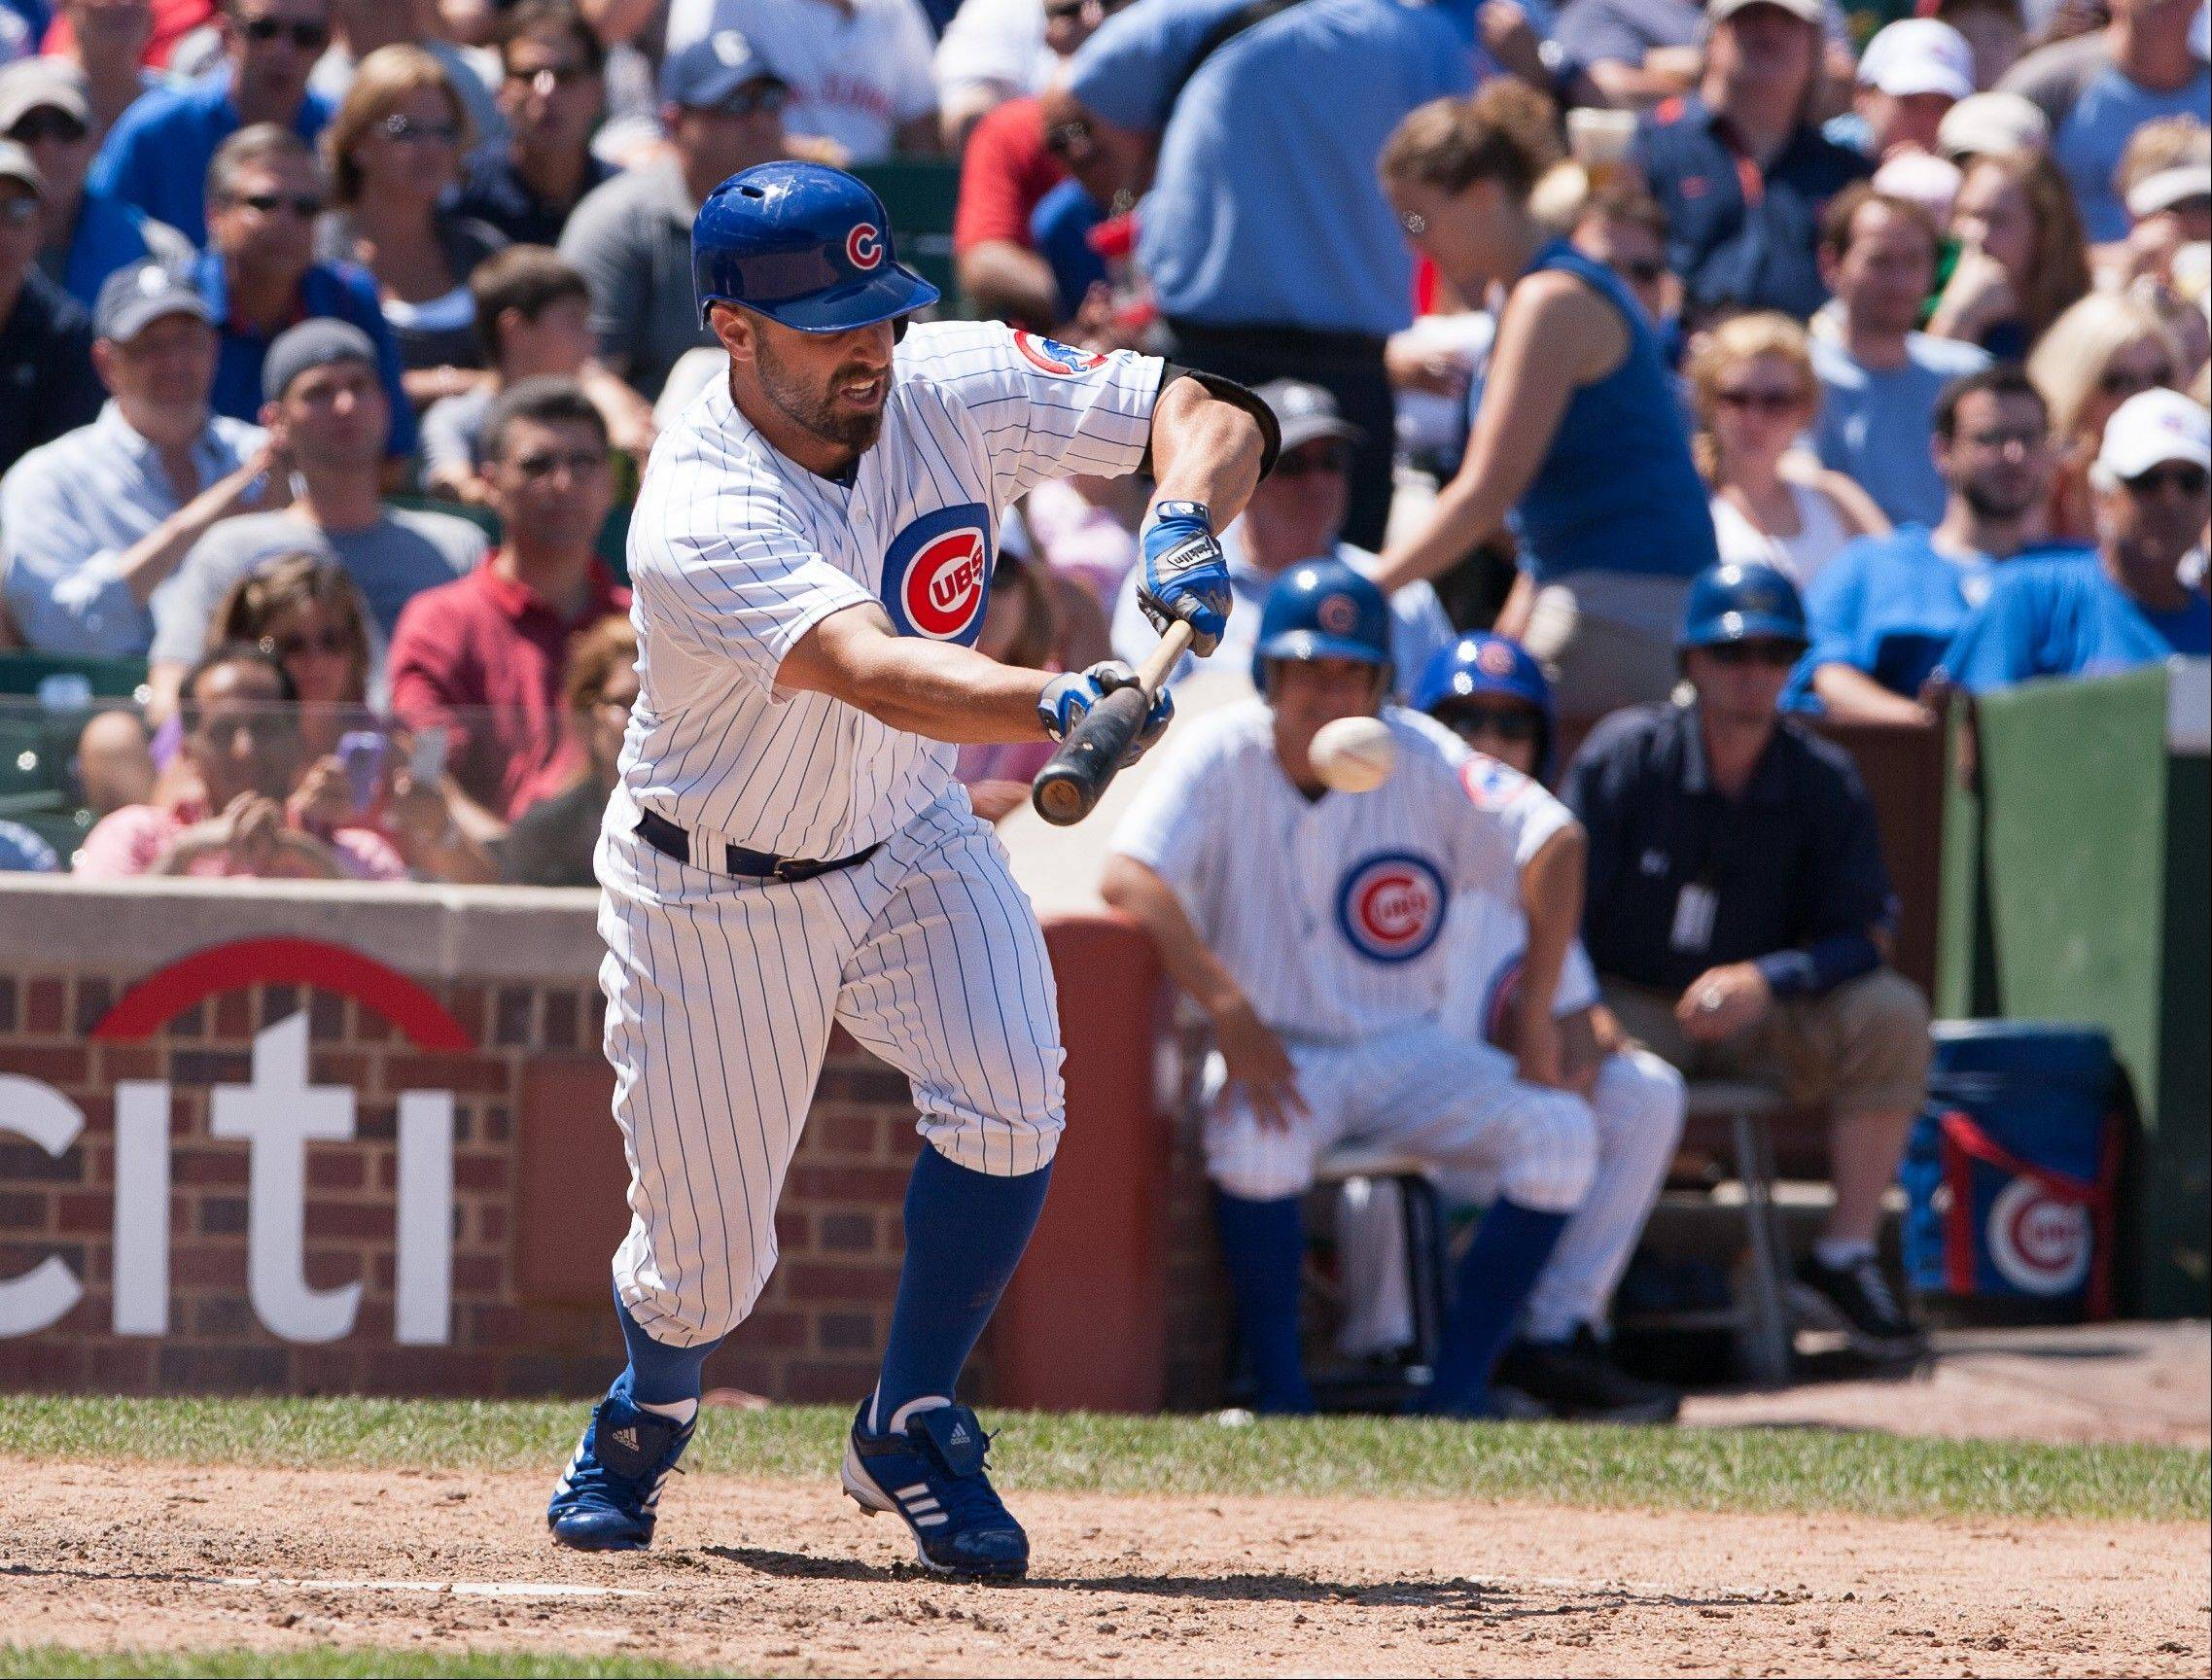 Reed Johnson bunts home the winning run Saturday at Wrigley Field. Johnson is hitting .448 as a pinch hitter and may be a player contending teams are looking at with the nonwaiver trade deadline here Tuesday.